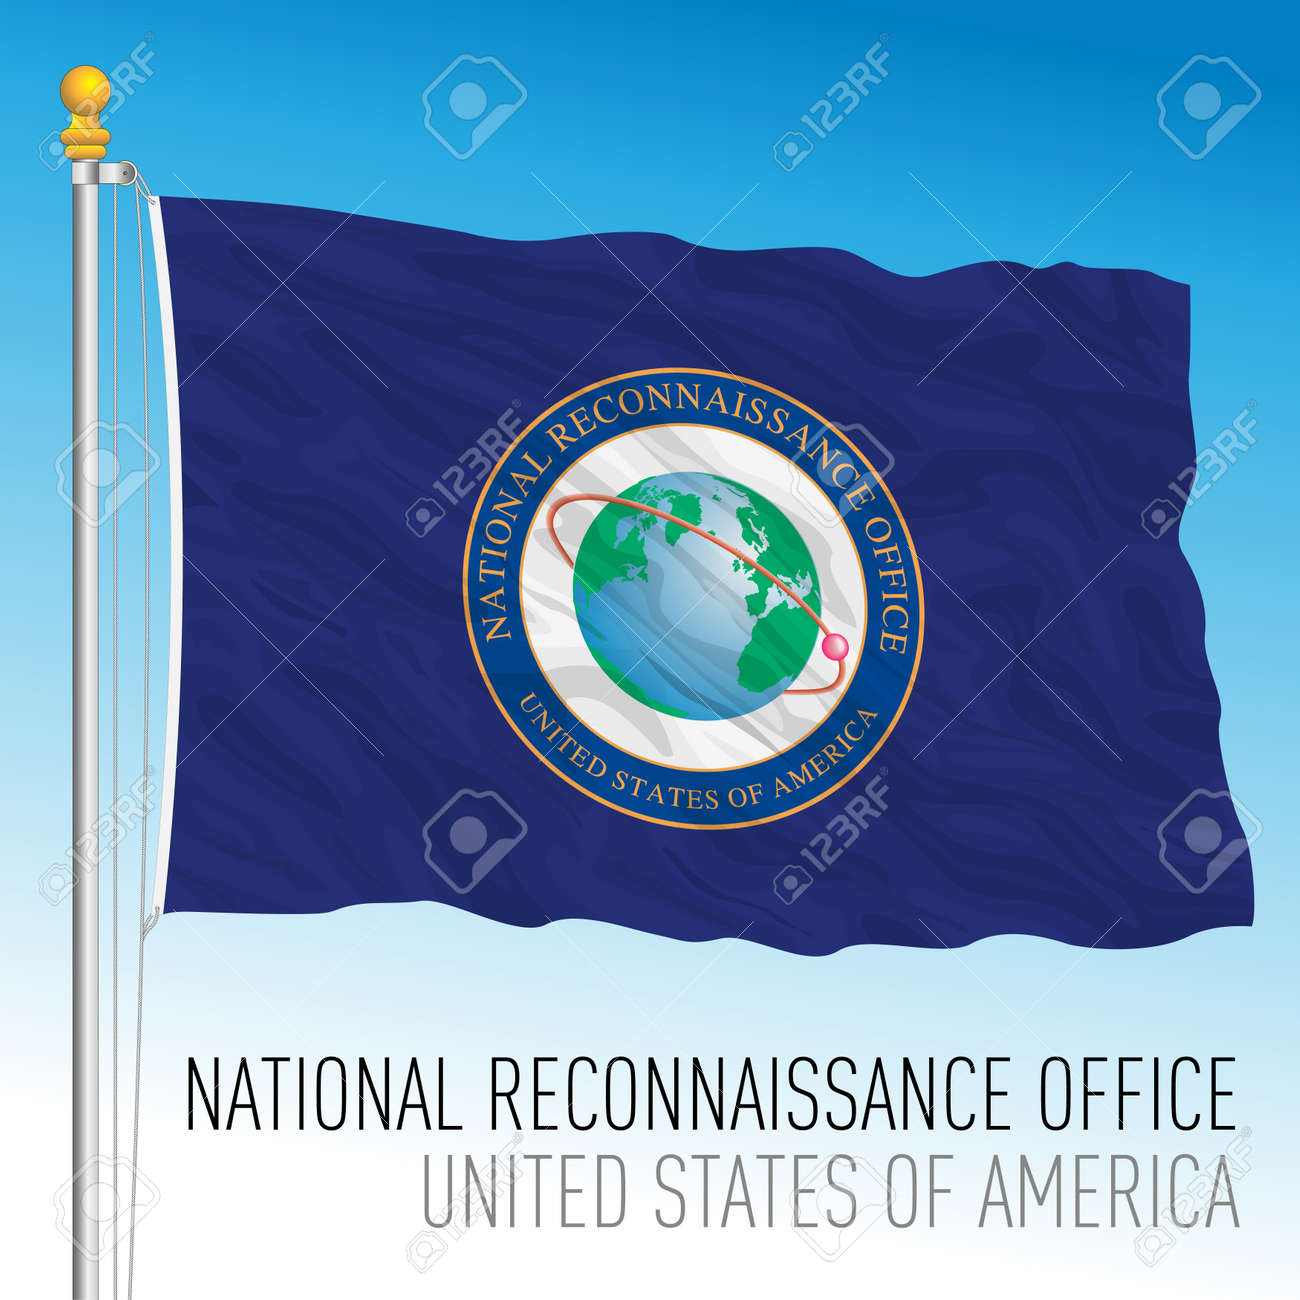 US National Reconnaissance Office flag, United States of America, vector illustration - 172958198